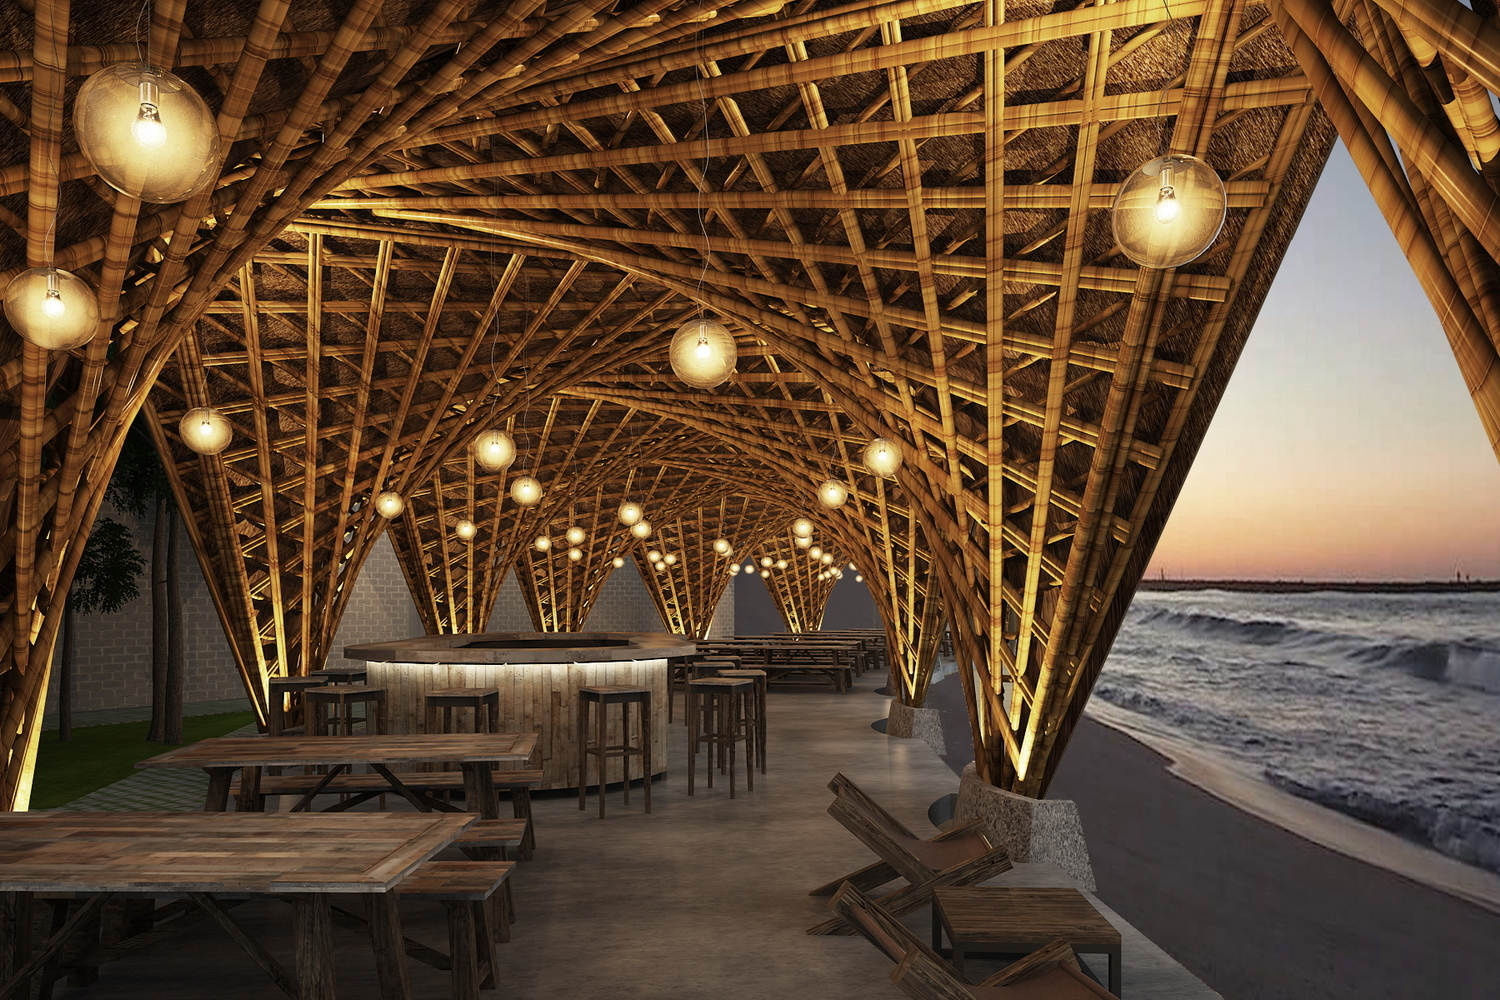 Castaway island resort vtn architects archdaily